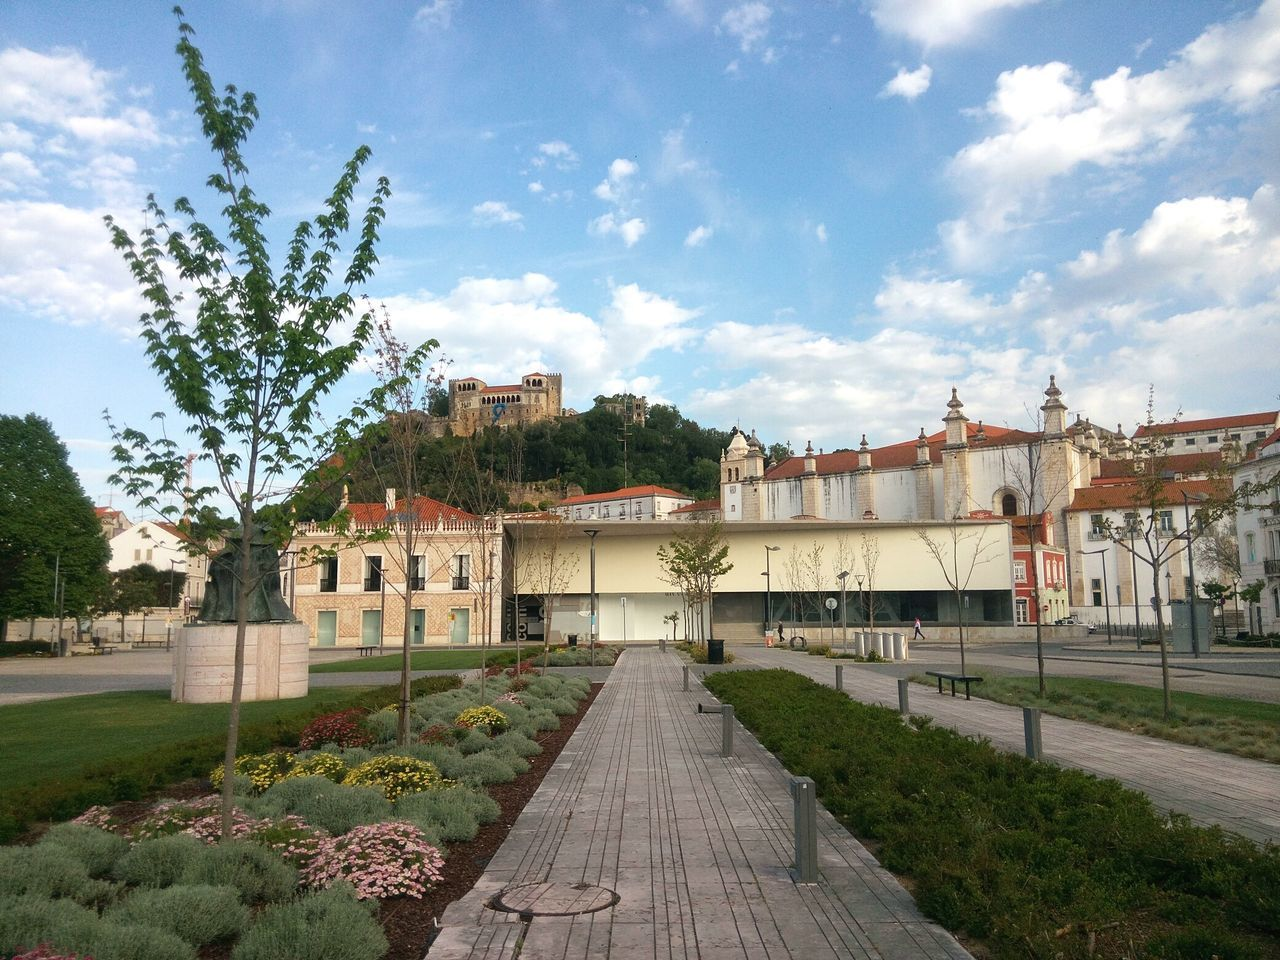 Outdoors No People Architecture Building Exterior Art Is Everywhere Walking Around EyeEm Gallery Leiria City Life Portugal Garden Castle Mountain Streetphotography Park Eye4photography  Church Cityscape Eye4photography  Architecture Street Urban Building EyeEm Best Shots Built Structure